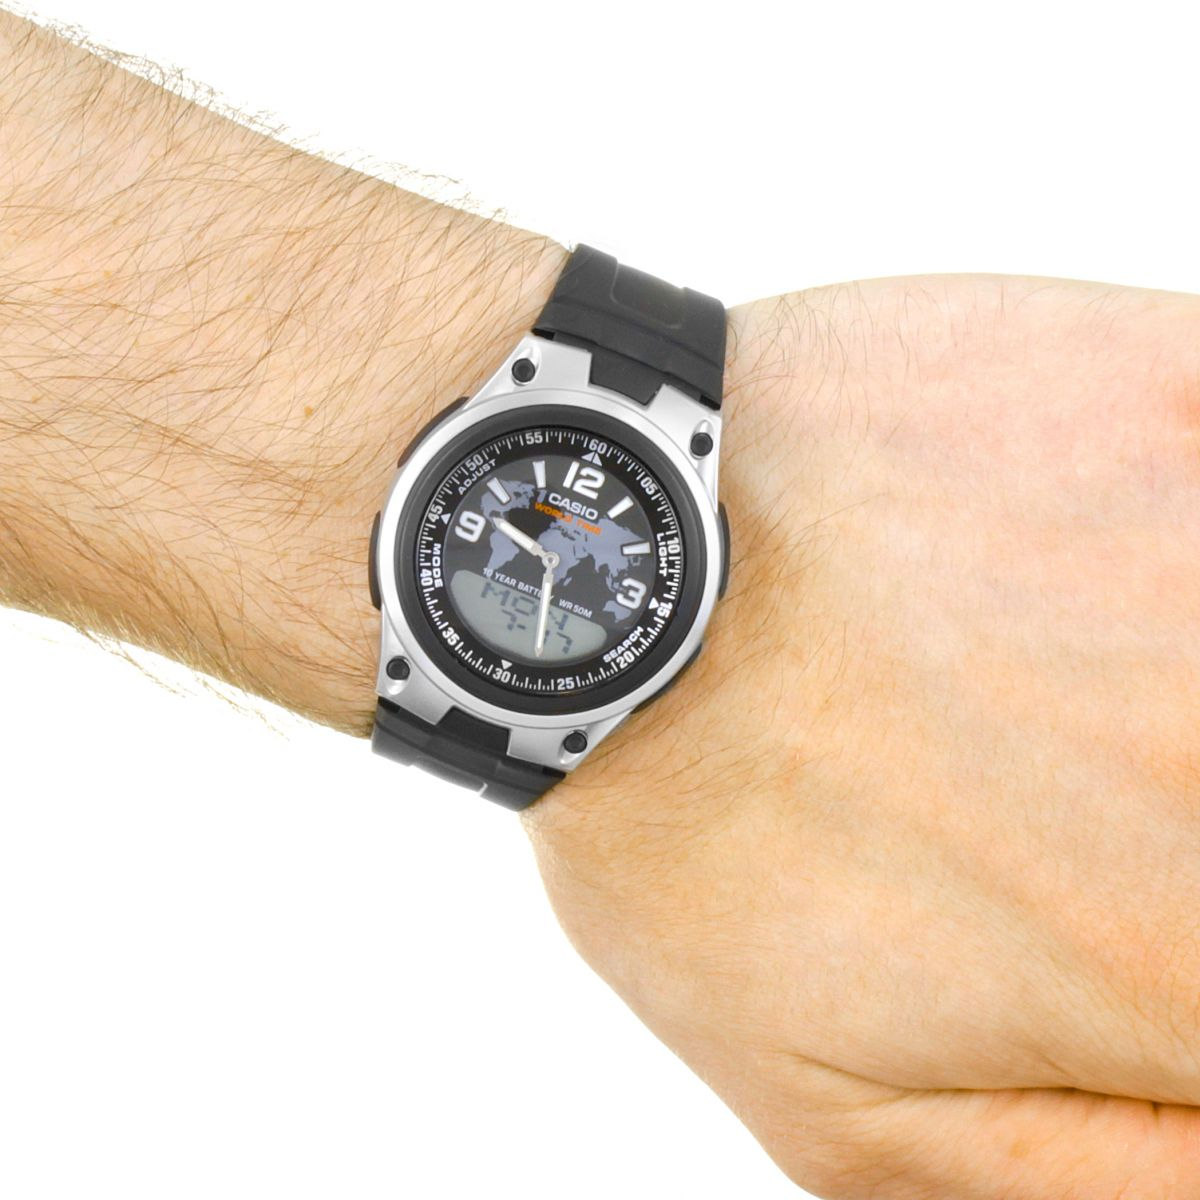 gents casio core alarm chronograph watch aw 80 1a2ves watchshop com rh watchshop com casio aw-80 user guide casio 2747 aw-80 user guide